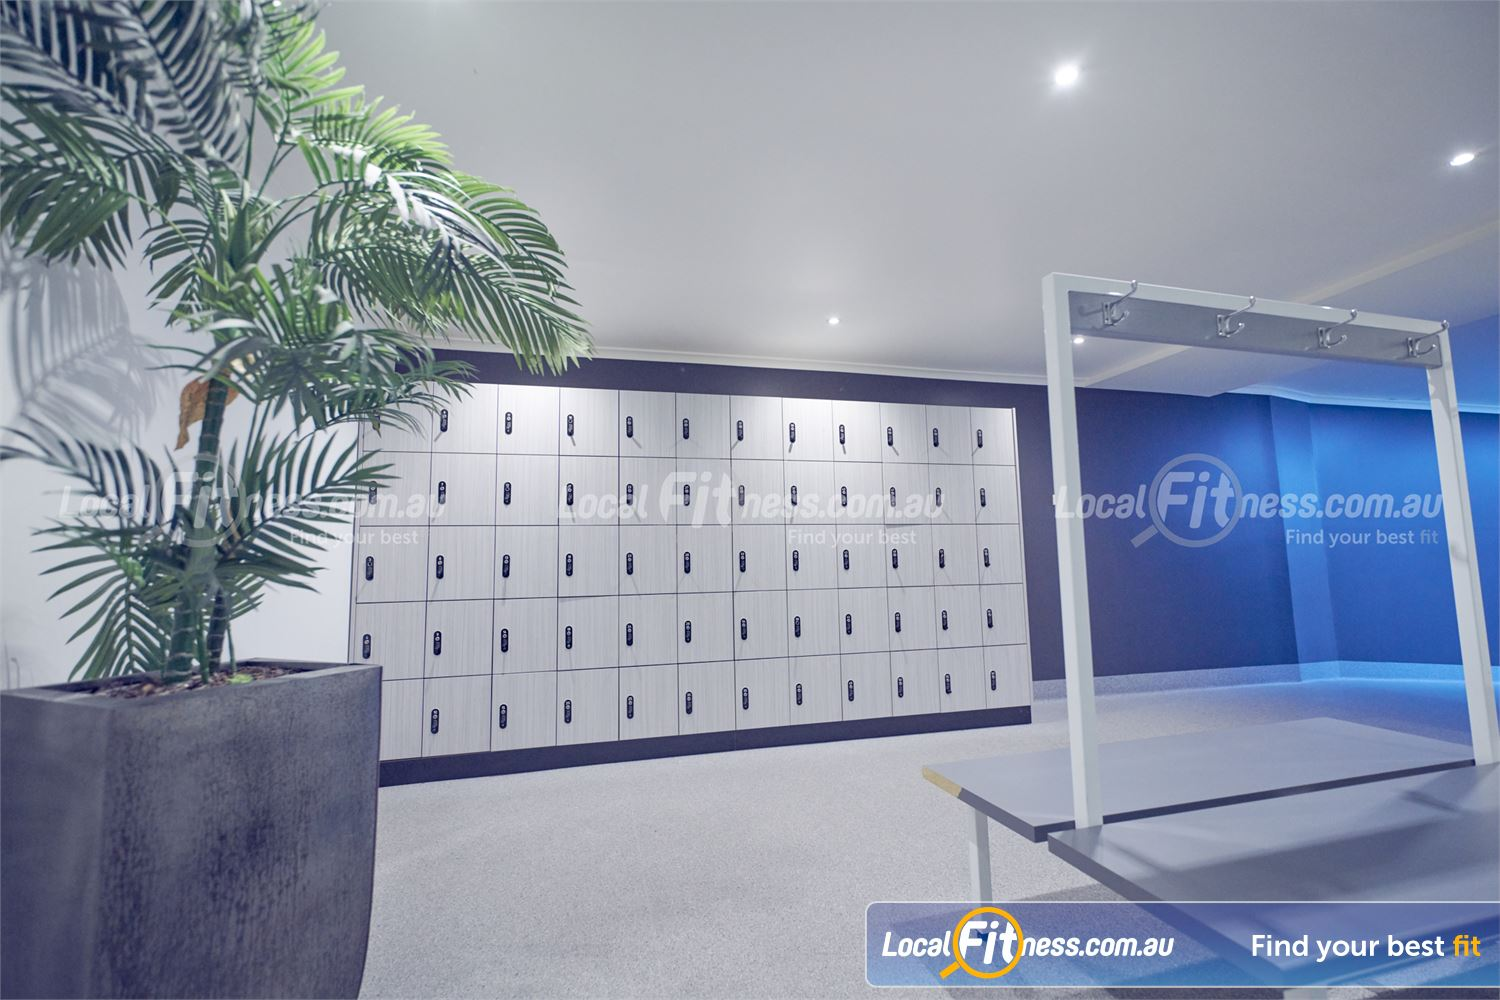 Fernwood Fitness Near Templestowe Lower Secure your belongings in our complimentary locker facilities.